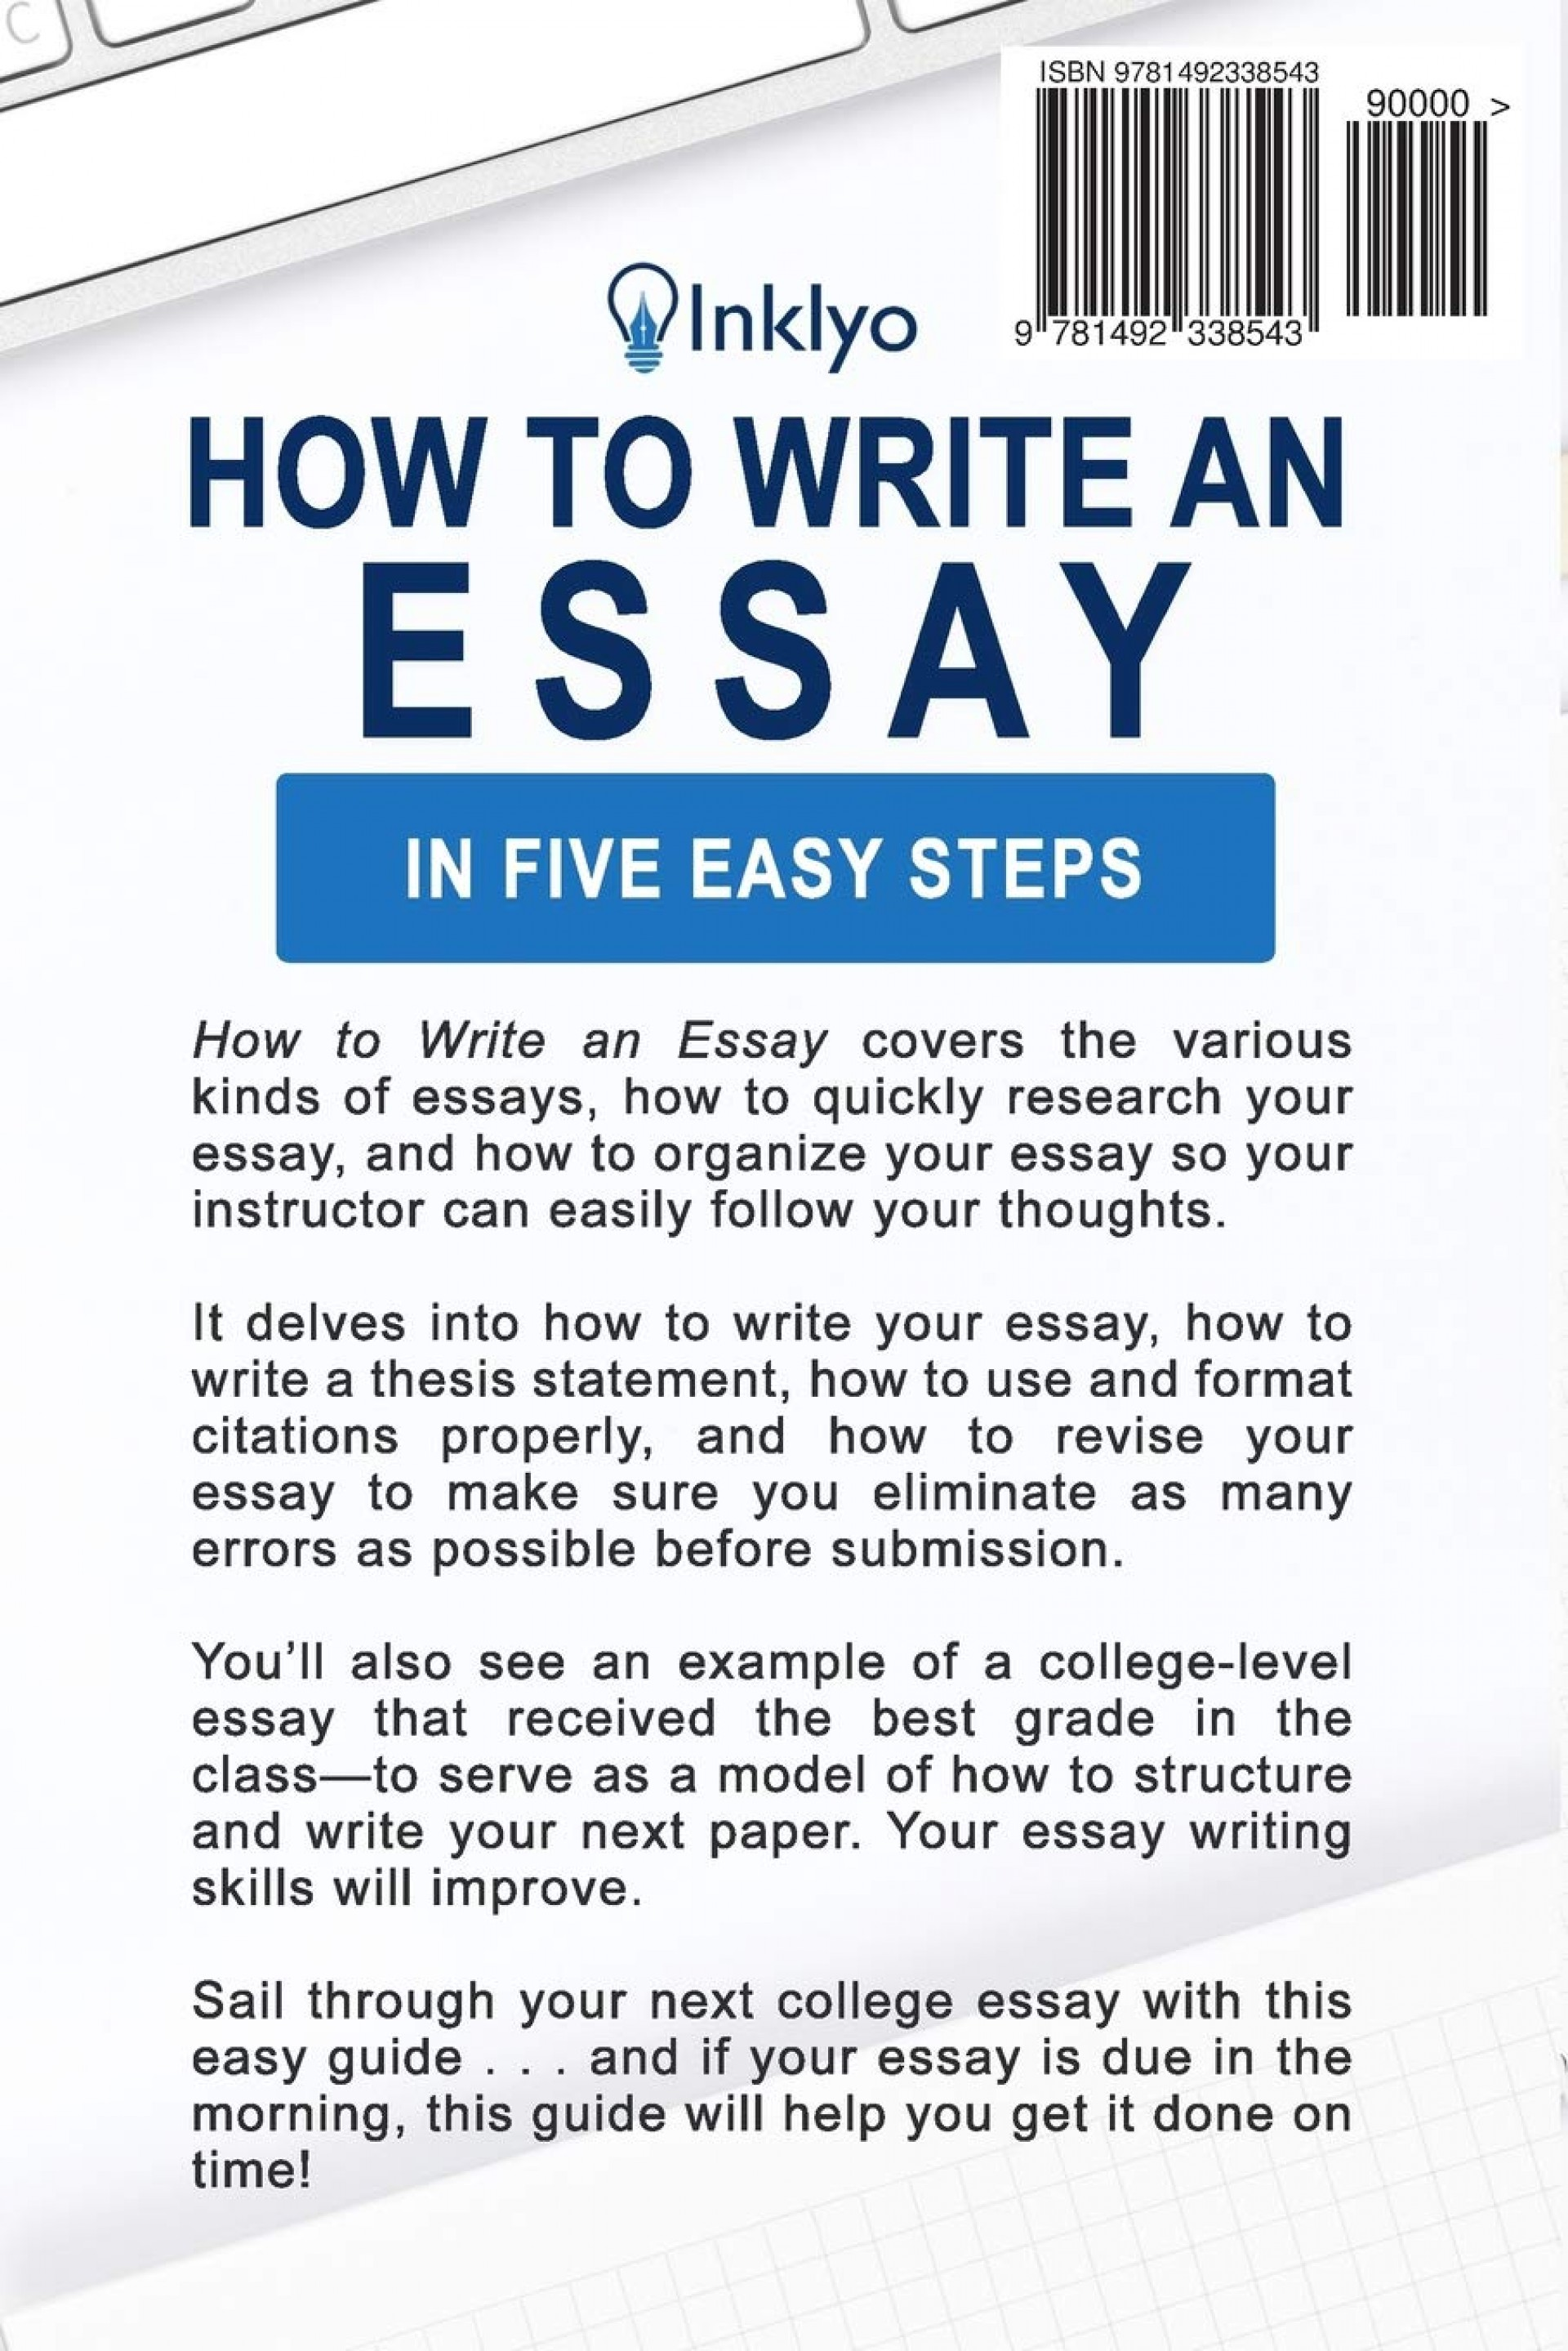 004 Essay Example How To Write And Unique An Paper In Apa Format Conclusion Mla 1920